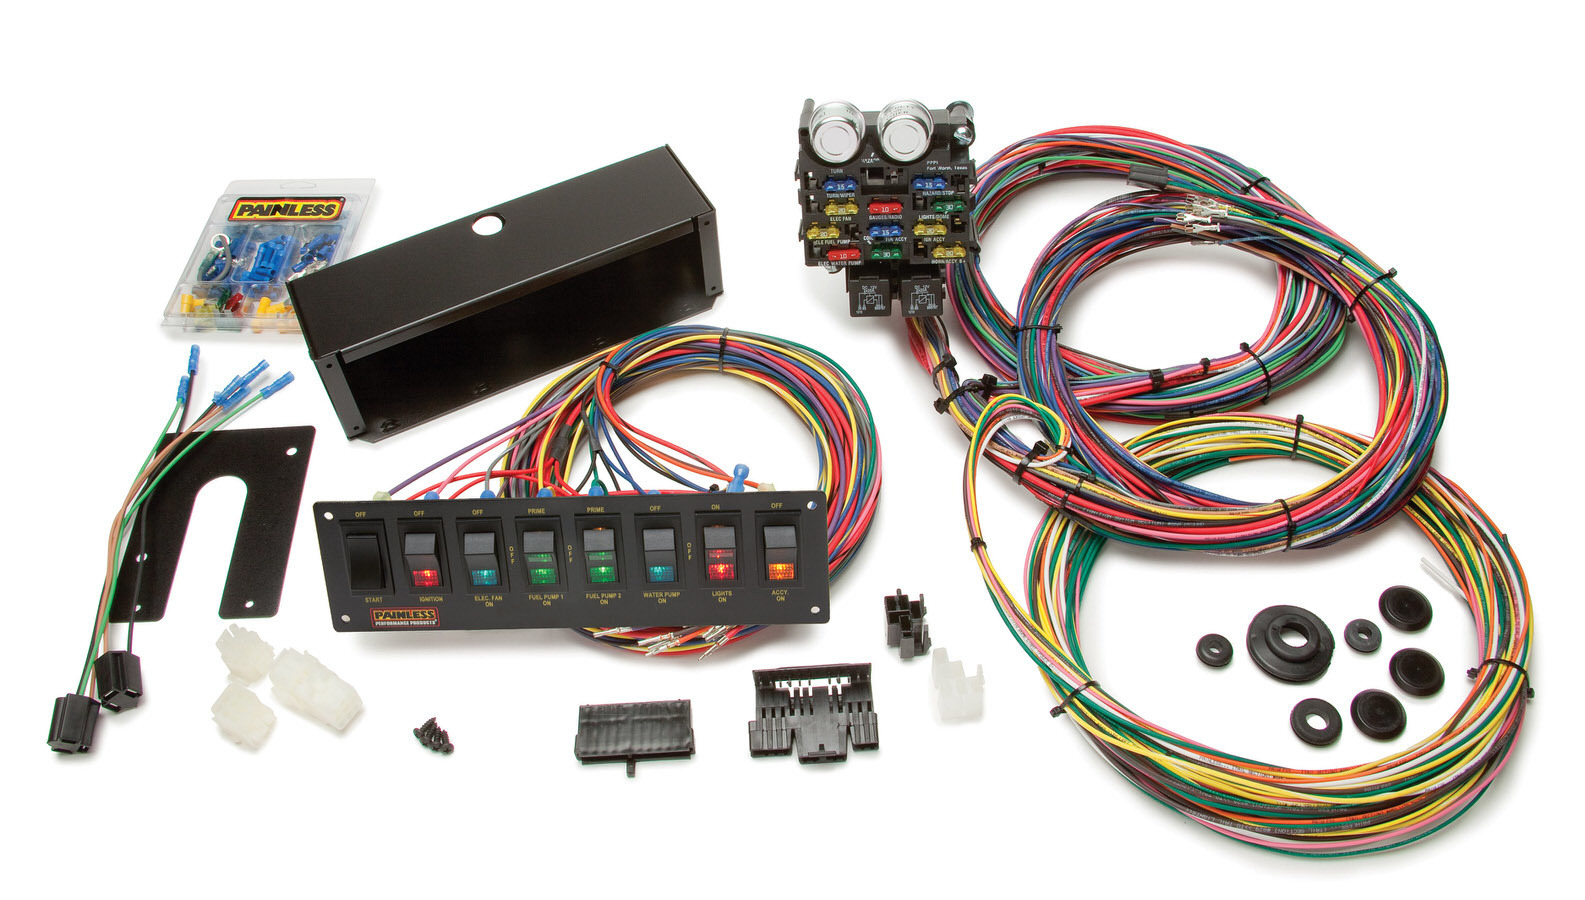 Painless Wiring 50003 Car Wiring Harness, Pro Street, Complete, 21 Circuit, Switch Panel, Universal, Kit